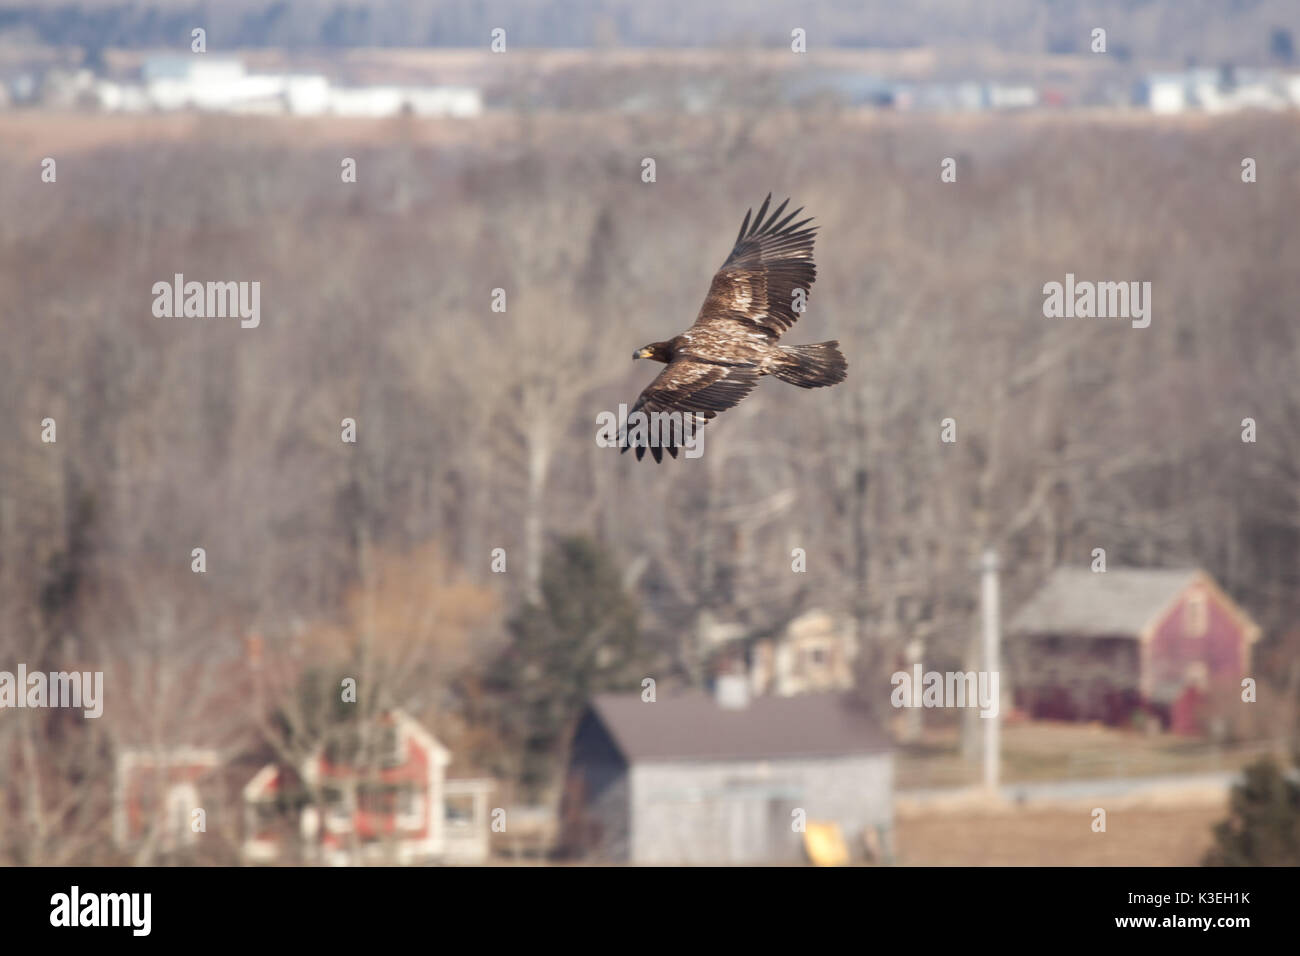 a single eagle soars over bare trees in winter - Stock Image